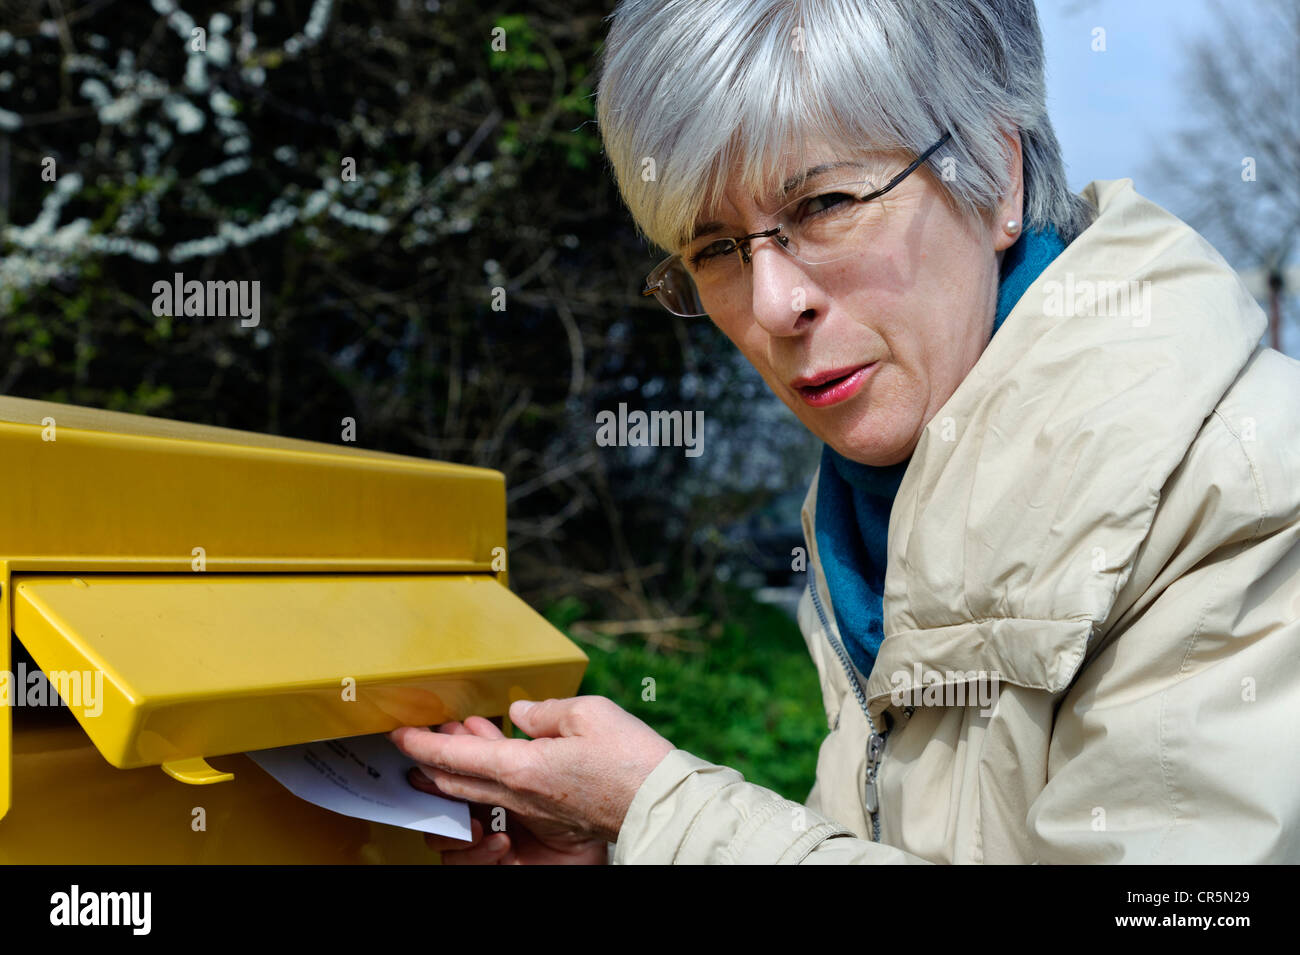 Woman putting a letter into a mailbox, Germany, Europe - Stock Image